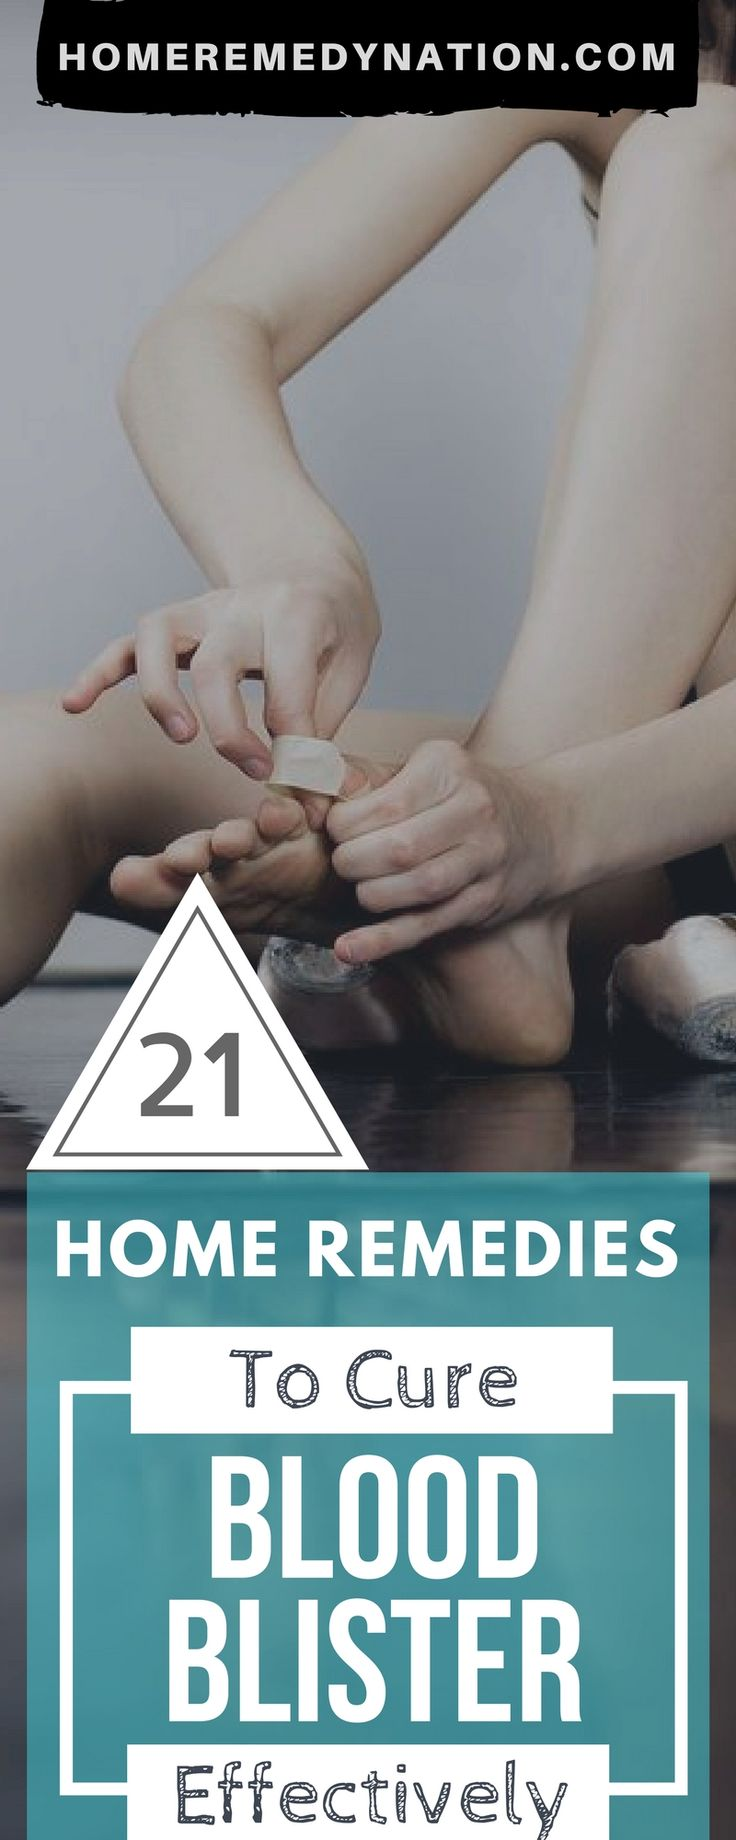 21 Wondrous Home Remedies To Get Rid Of Blood Blisters | Home Remedy Nation  #BloodBlister #HomeRemedy #Blisters #Remedies #NaturalRemedy #NaturalCure